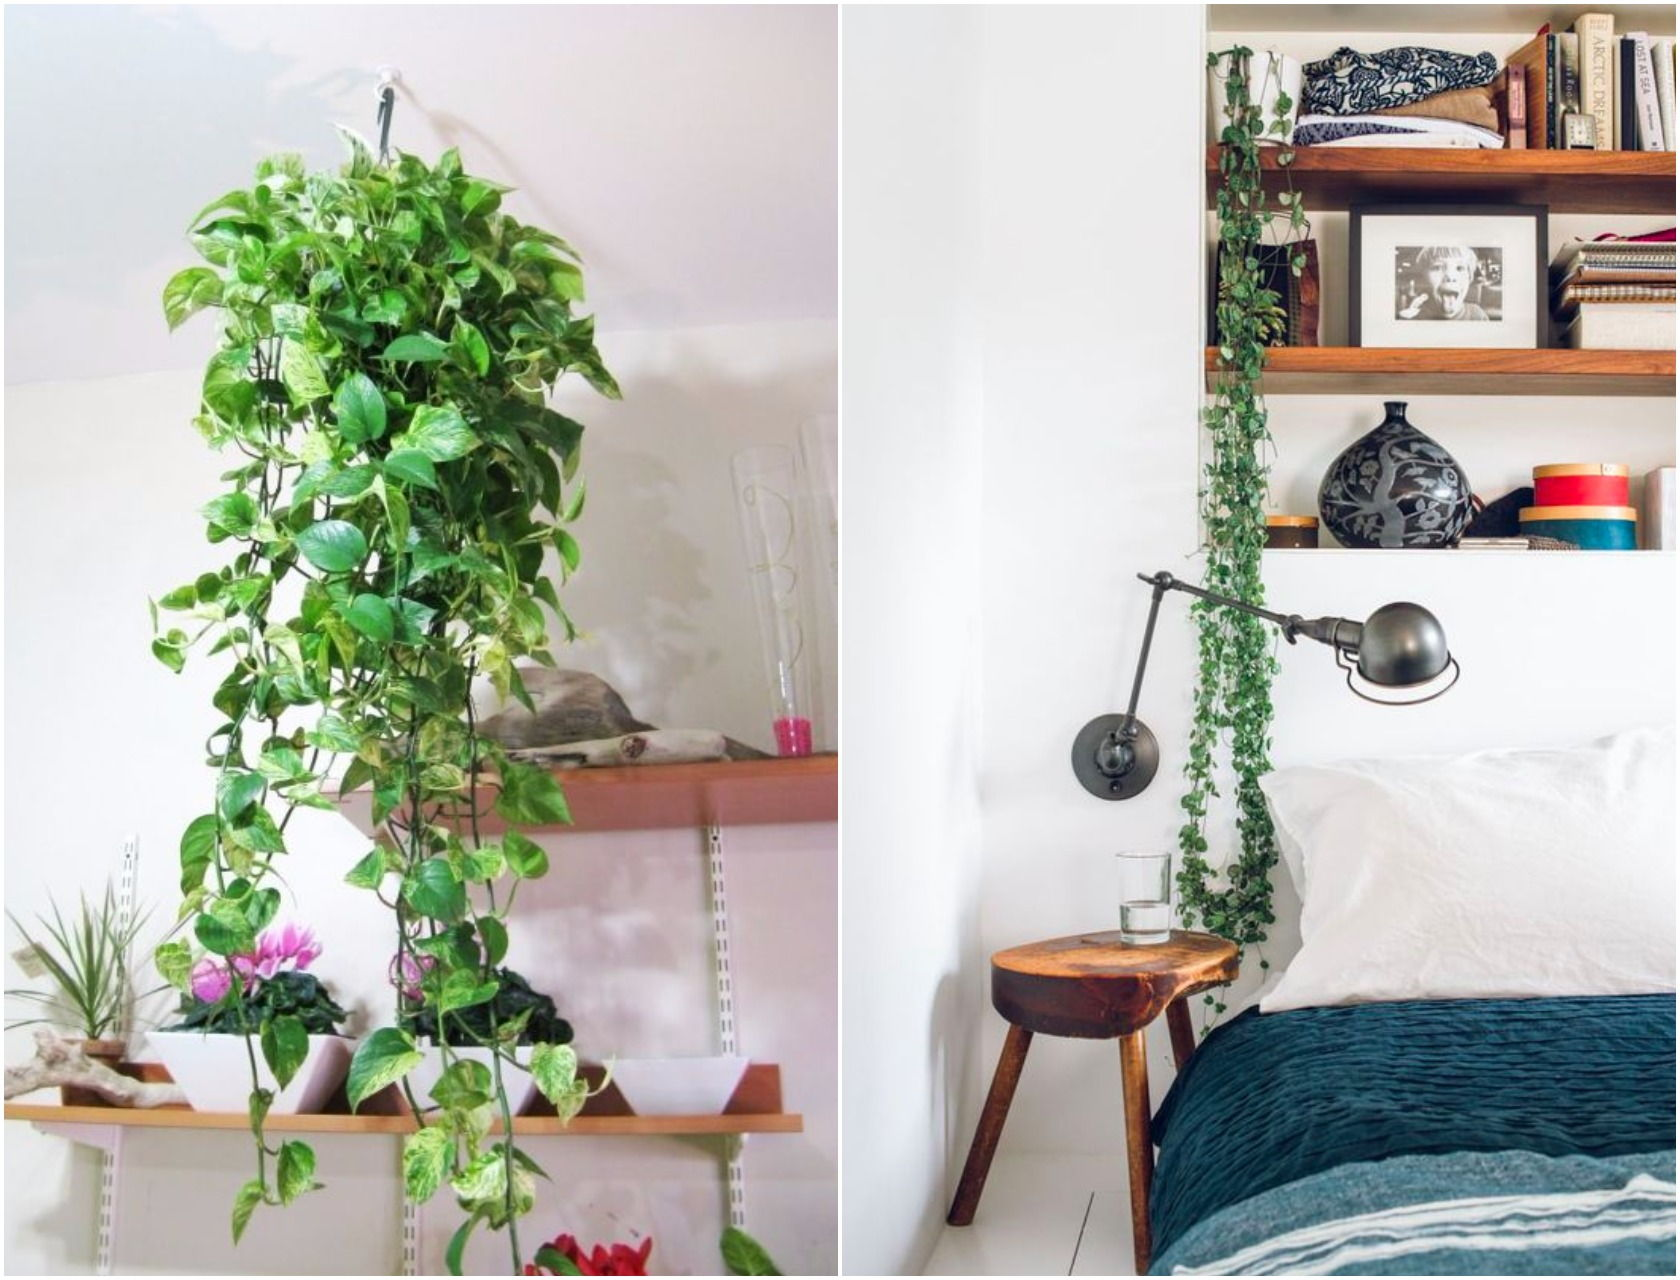 9 Indoor Plants You Can't Kill (So Easily) | Atap.co on st.lucia plants, persia plants, china's plants, sub saharan africa plants, hiroshima plants, montenegro plants, polynesia plants, australia northern territory plants, medically important plants, arabian peninsula plants, liechtenstein plants, middle colonies plants, himalayan region plants, britain plants, pohnpei plants, stacy plants, zambia plants, central china plants, ice land plants, mayotte plants,